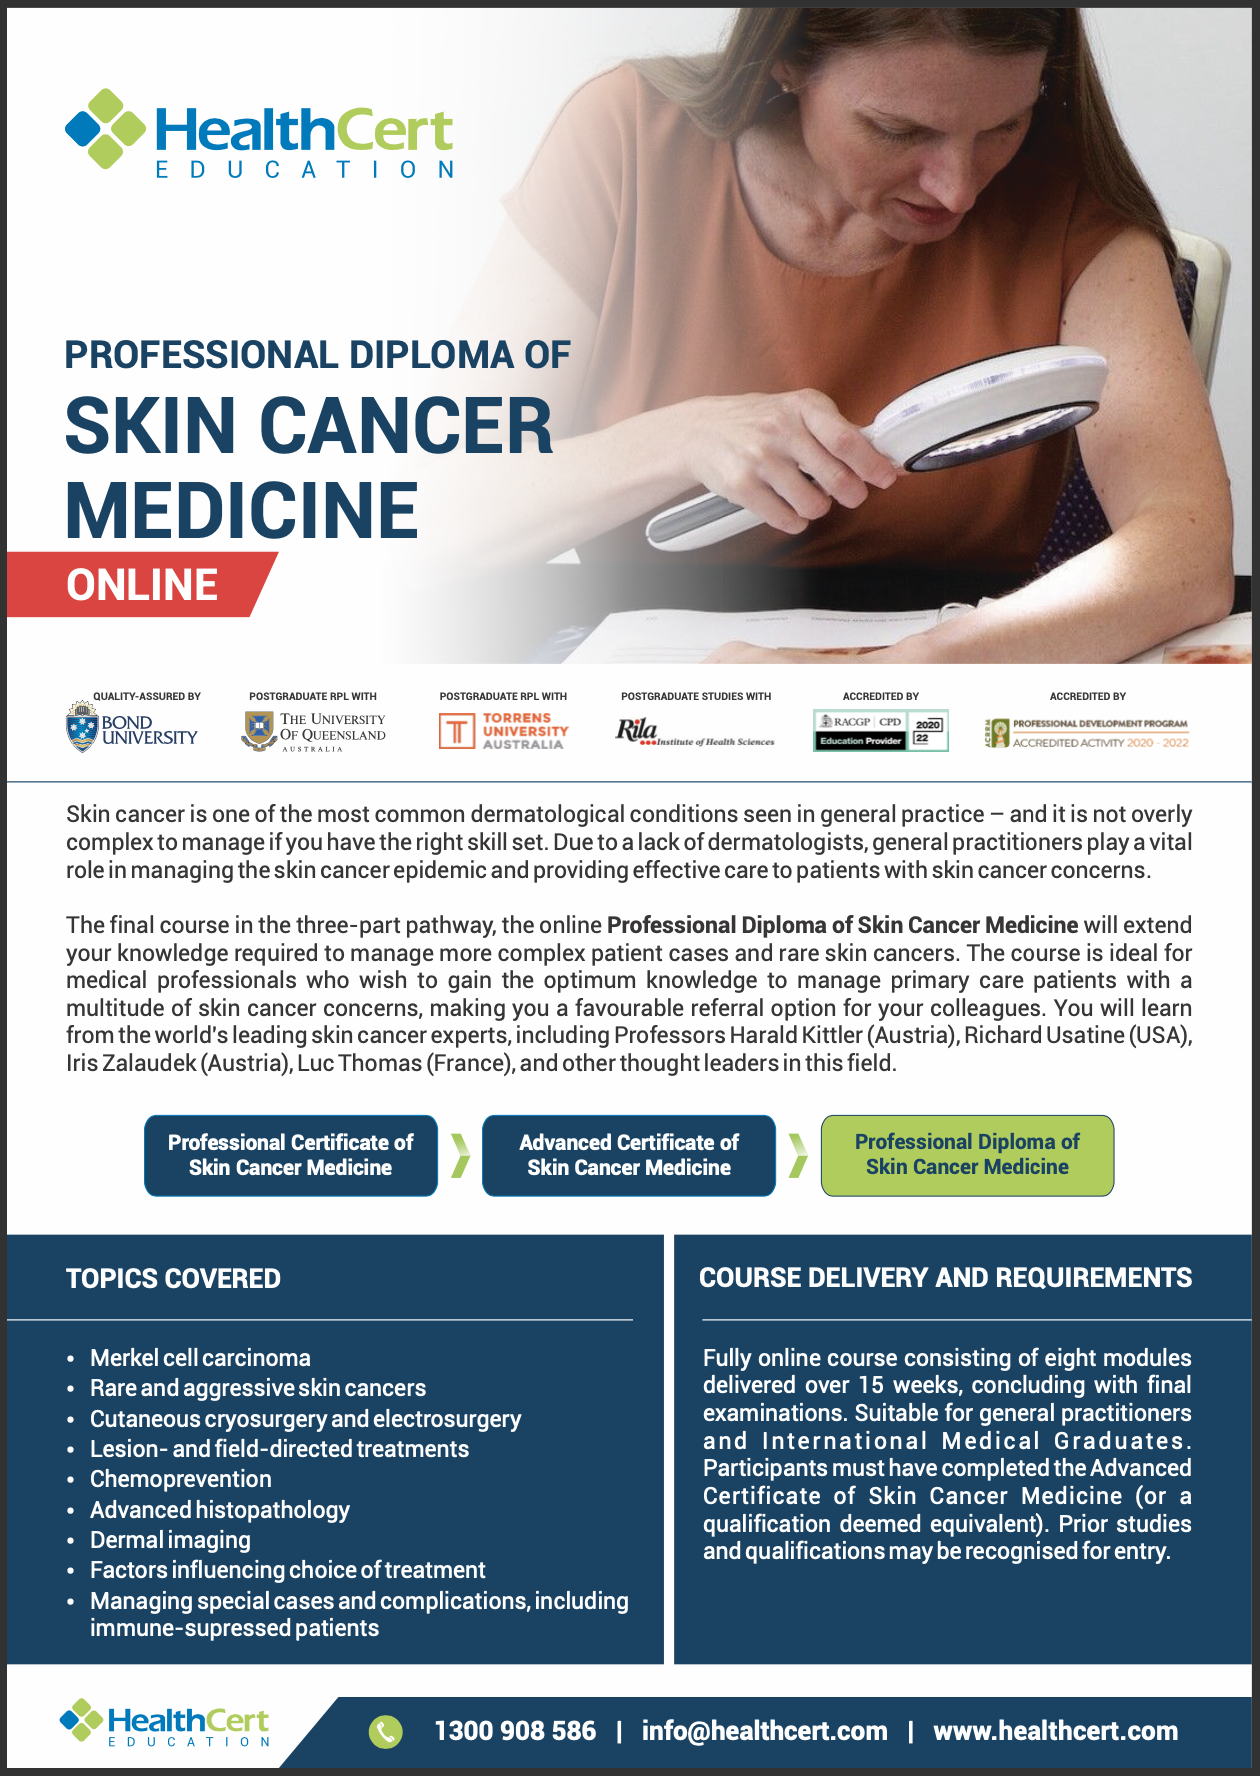 Professional-Diploma-of-Skin-Cancer-Medicine